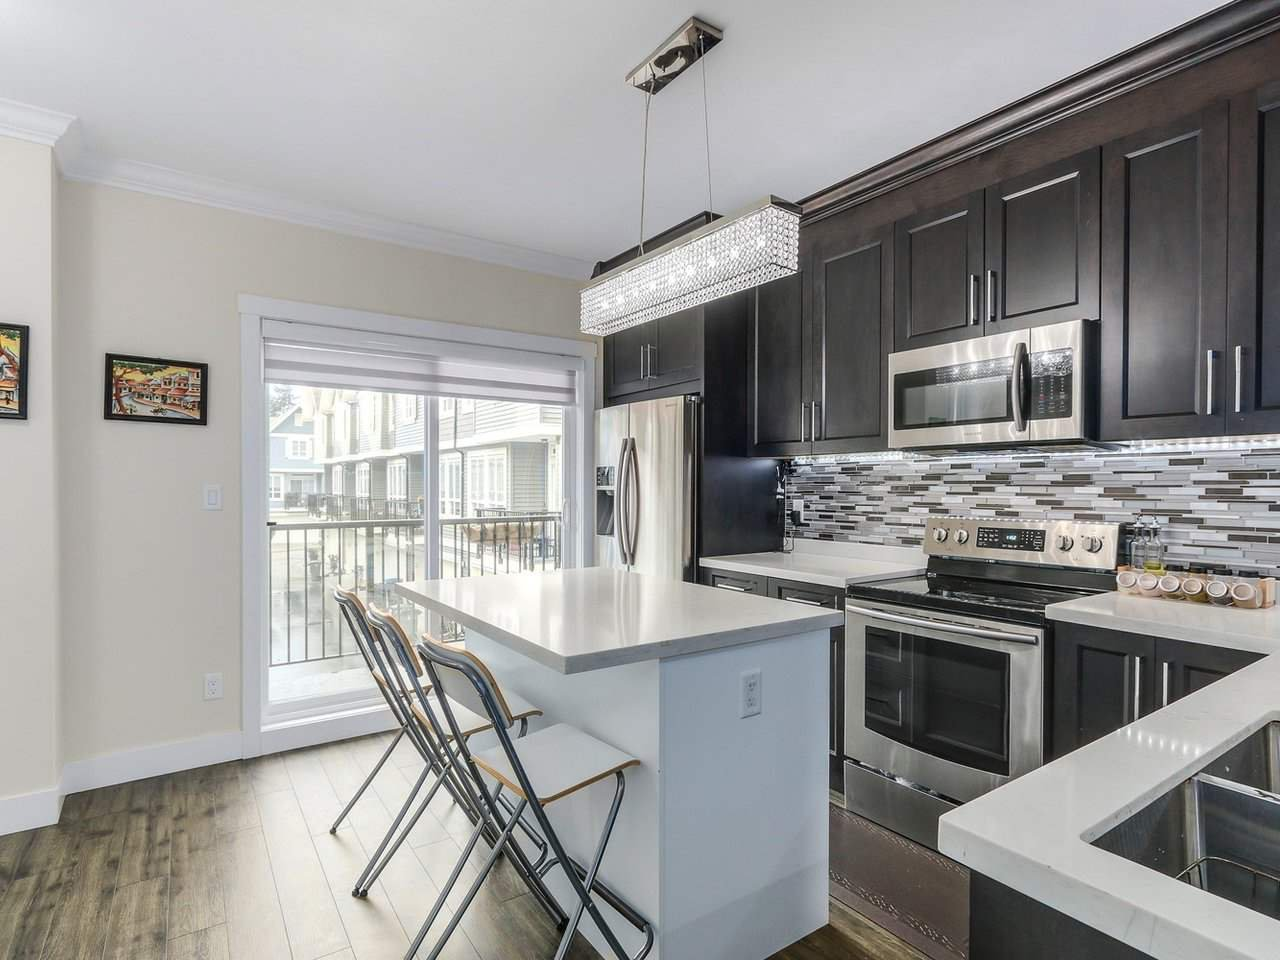 Main Photo: 9 14388 103 Avenue in Surrey: Whalley Townhouse for sale (North Surrey)  : MLS®# R2232766